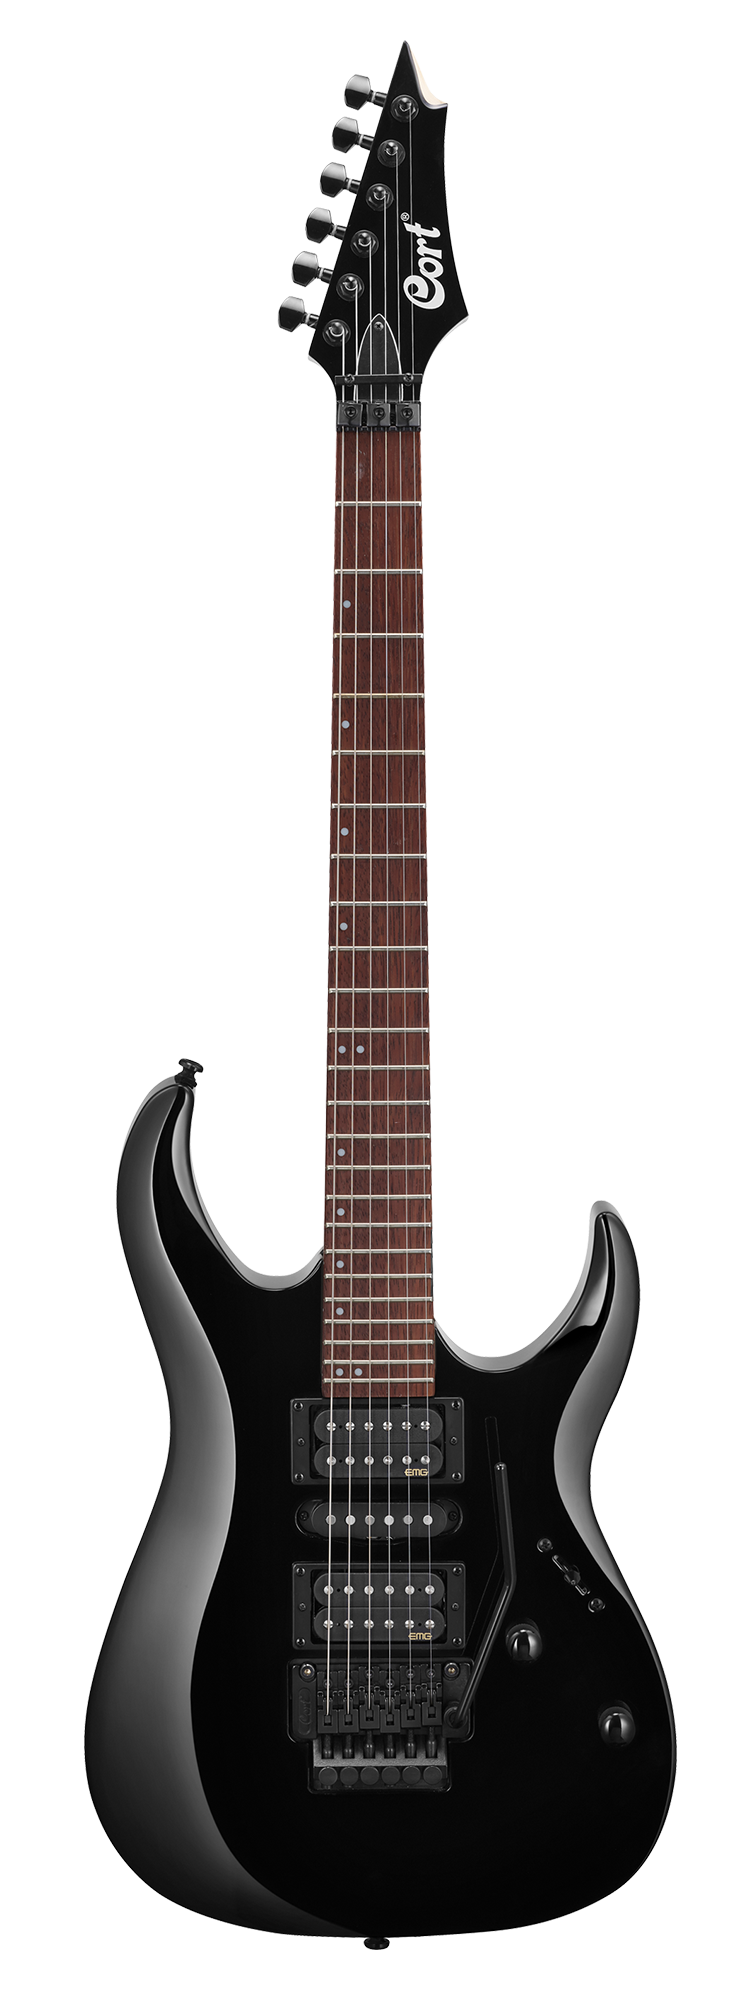 Cort X250 BK Electric Guitar Black